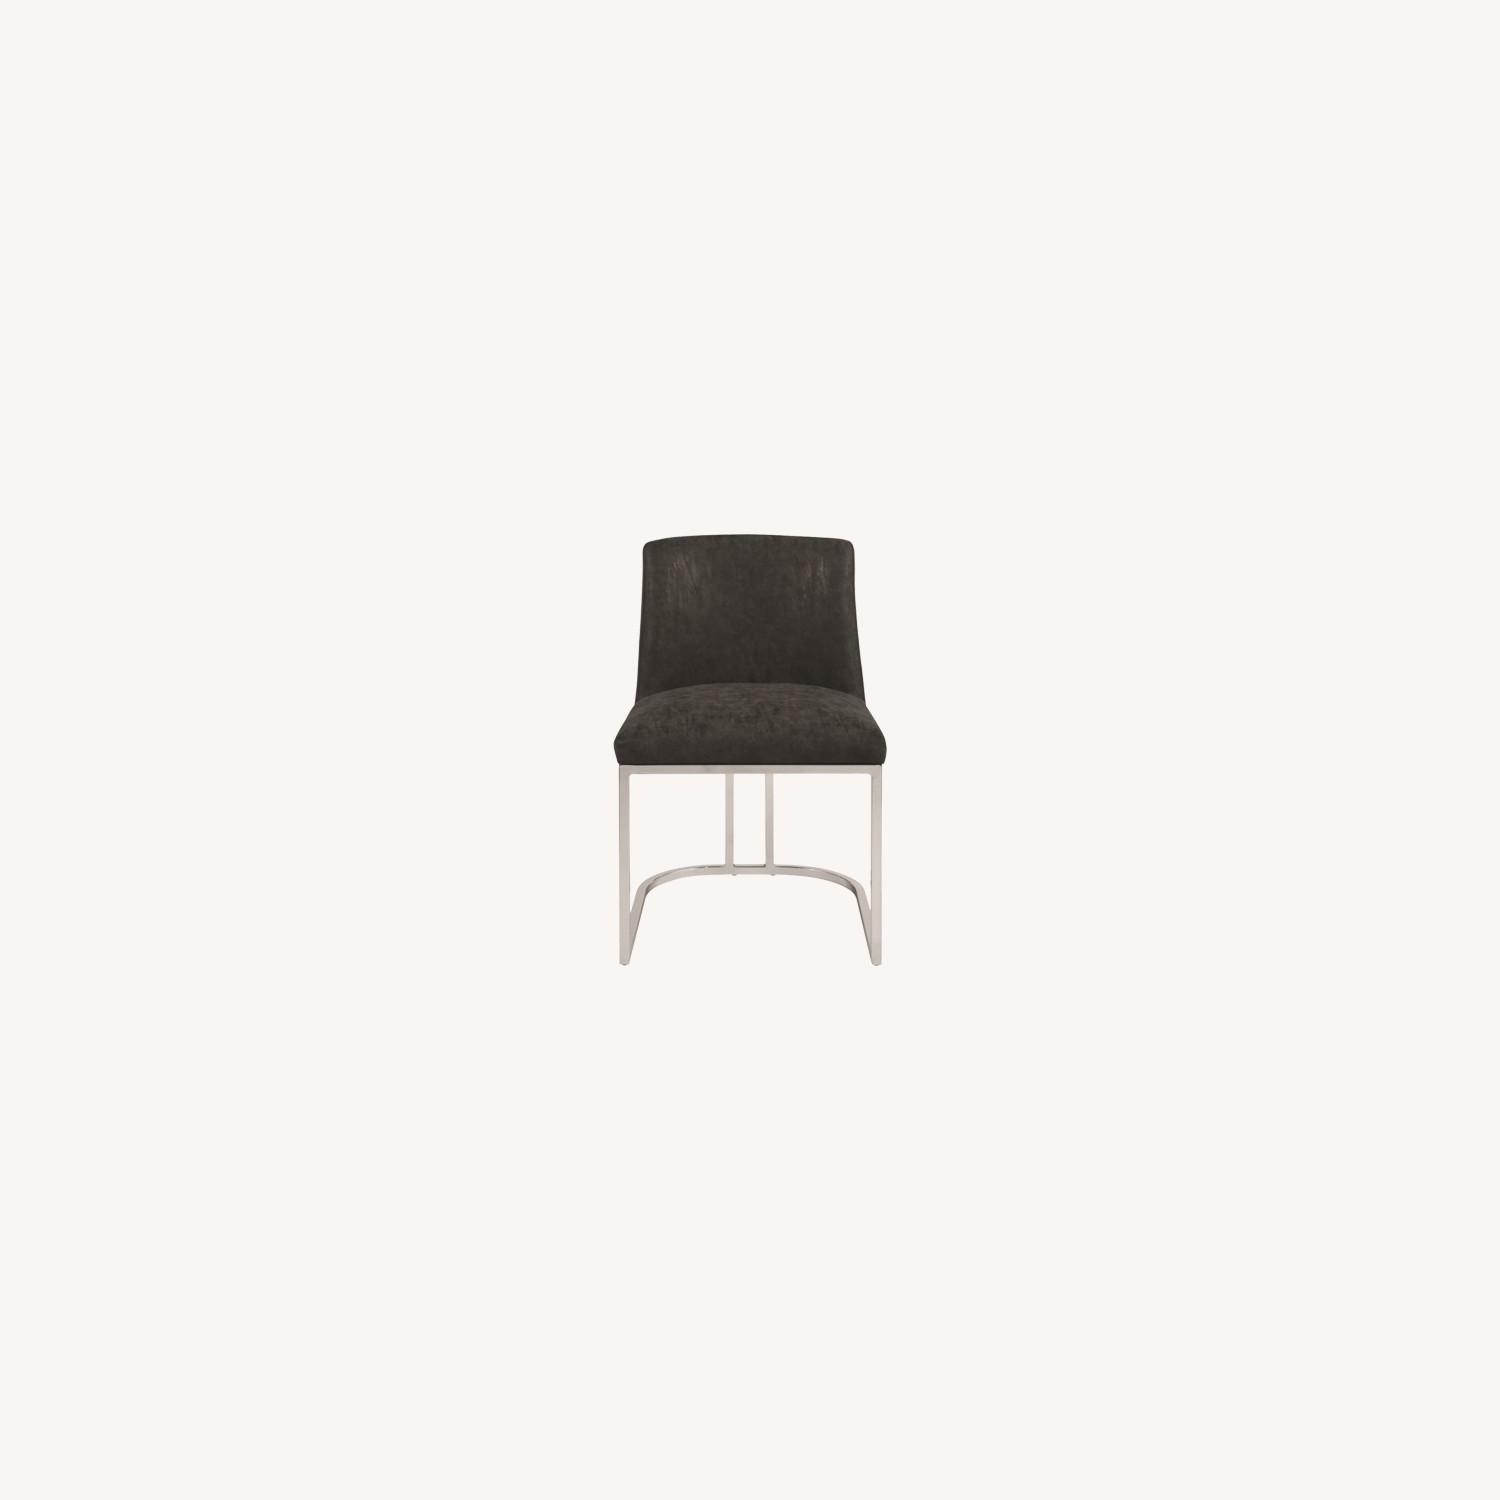 Modern Dining Chair In Black Leatherette - image-4